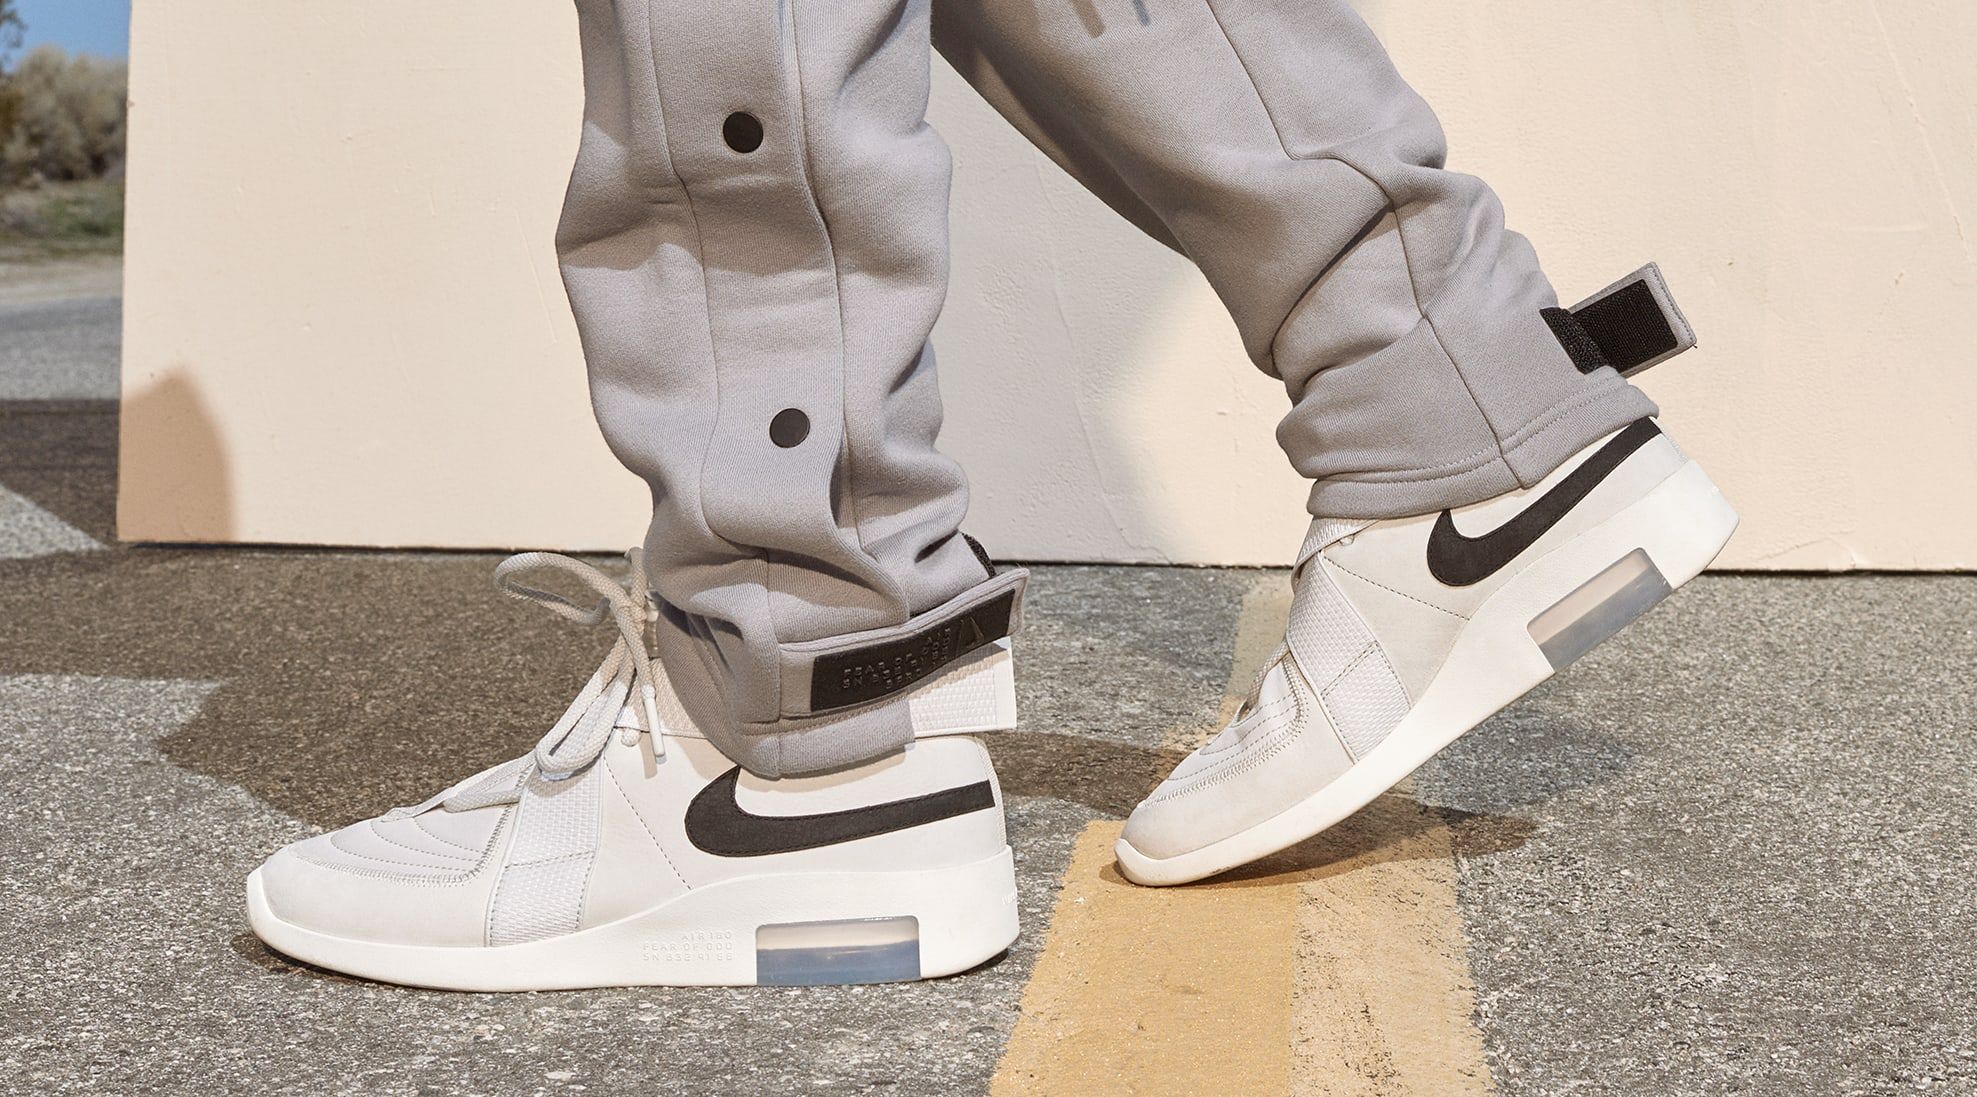 Nike Air Fear of God Spring/Summer 2019 Collection 1